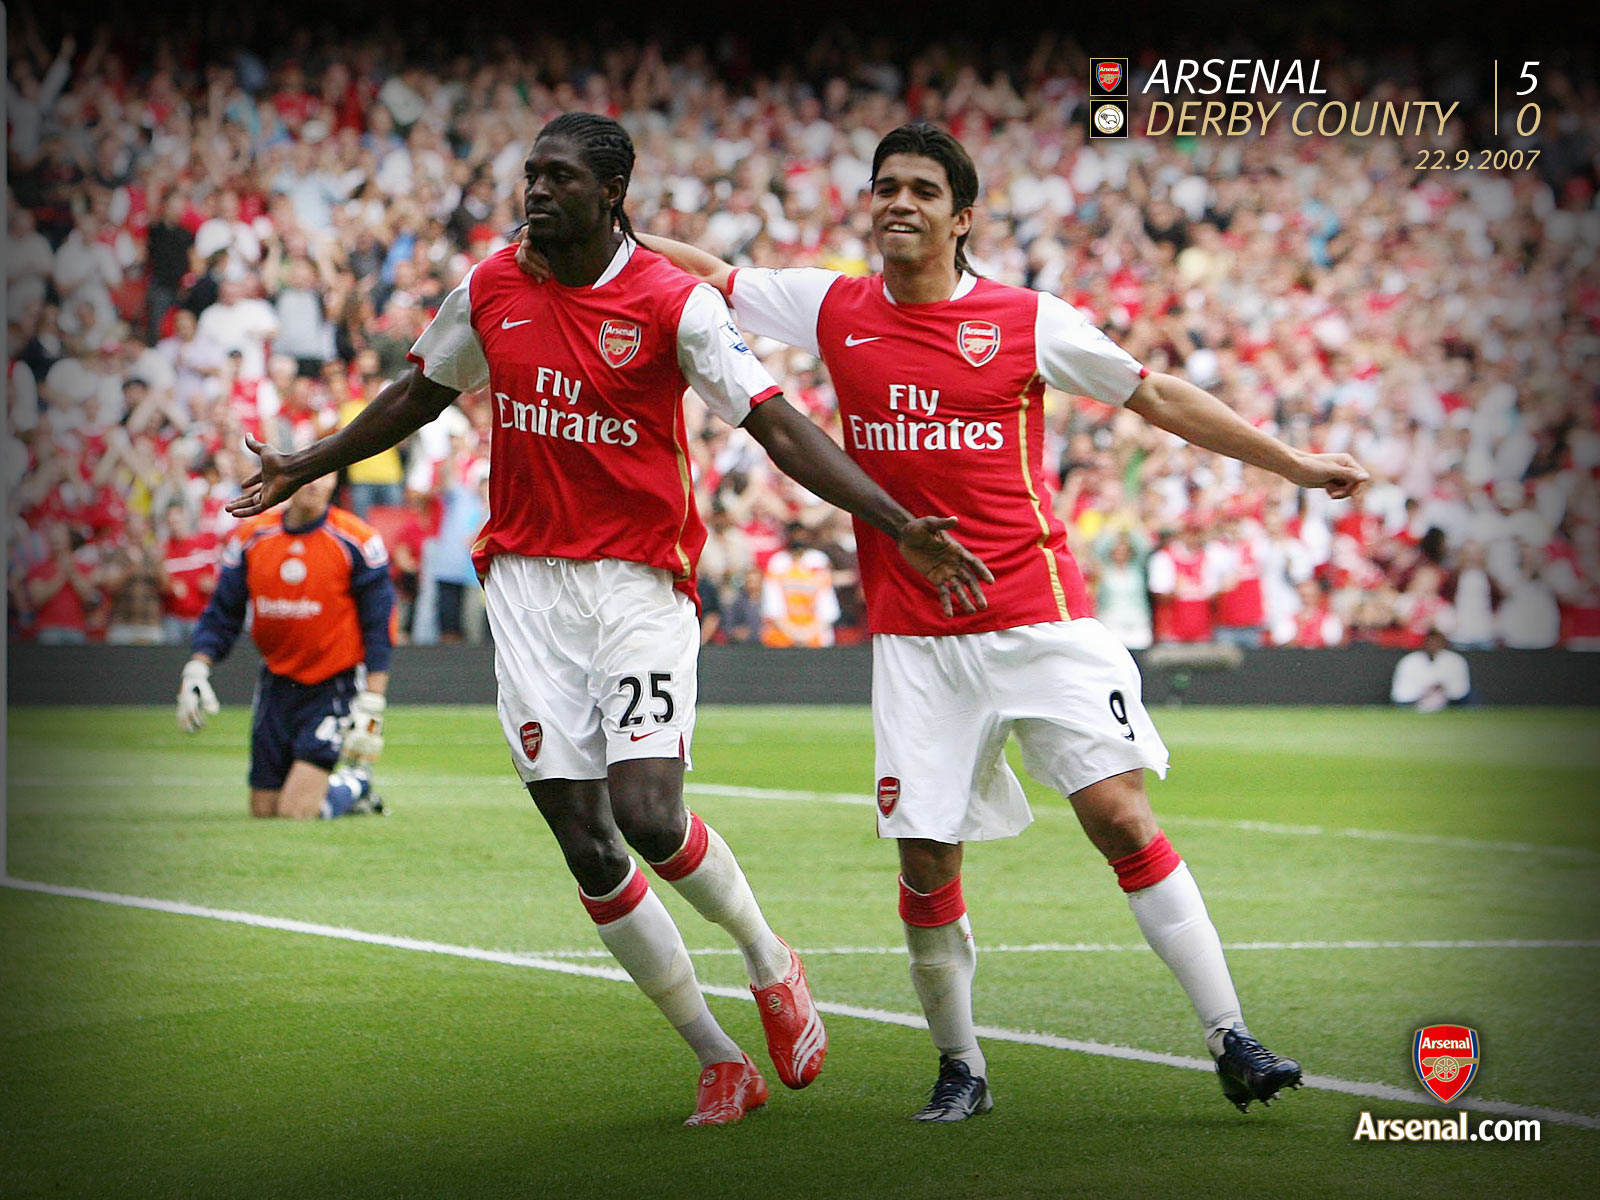 arsenal - photo #24